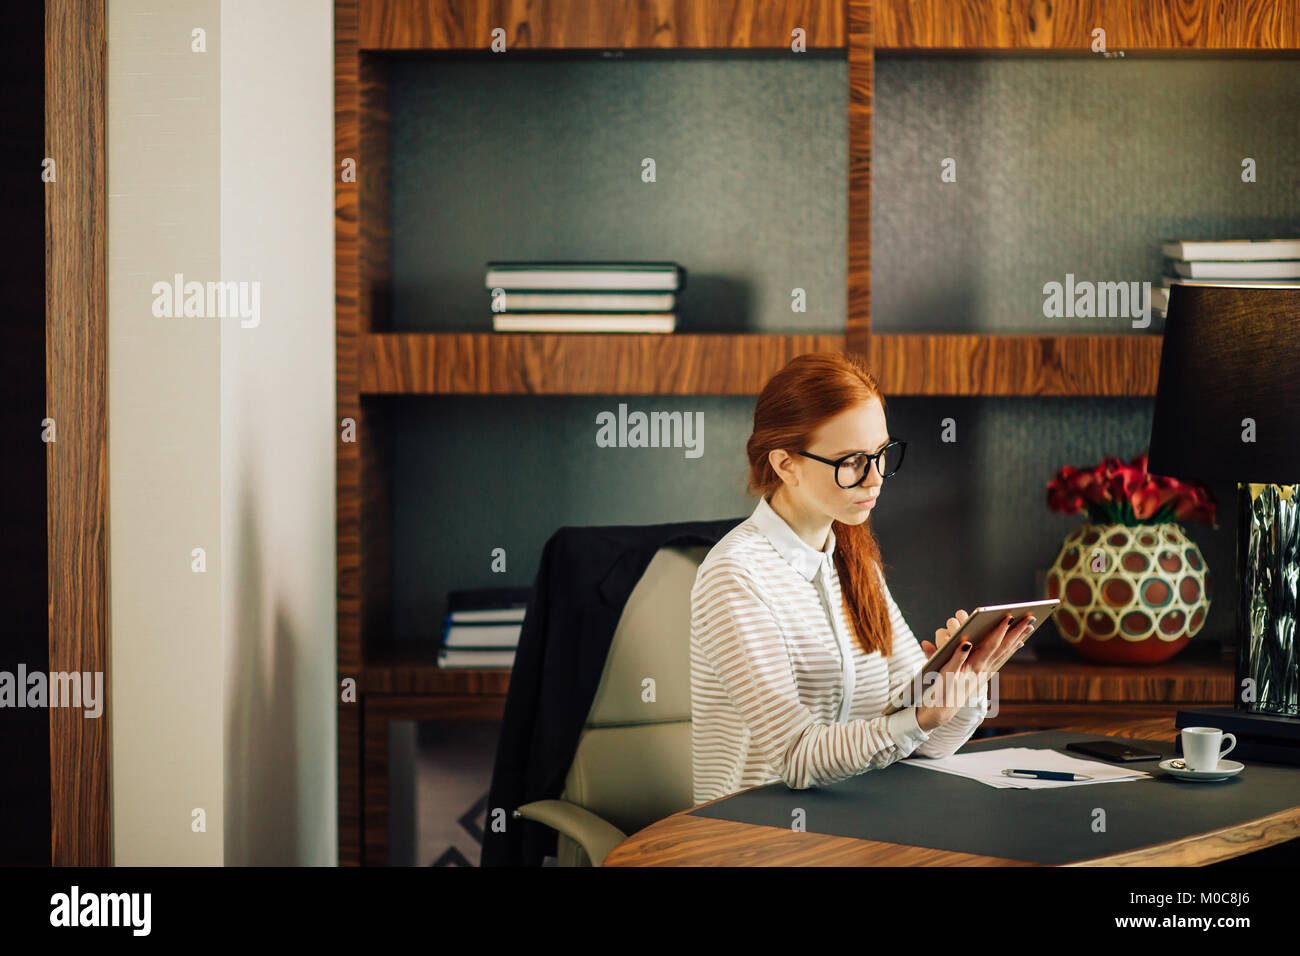 Businesswoman wearing glasses using digital tablet in office - Stock Image